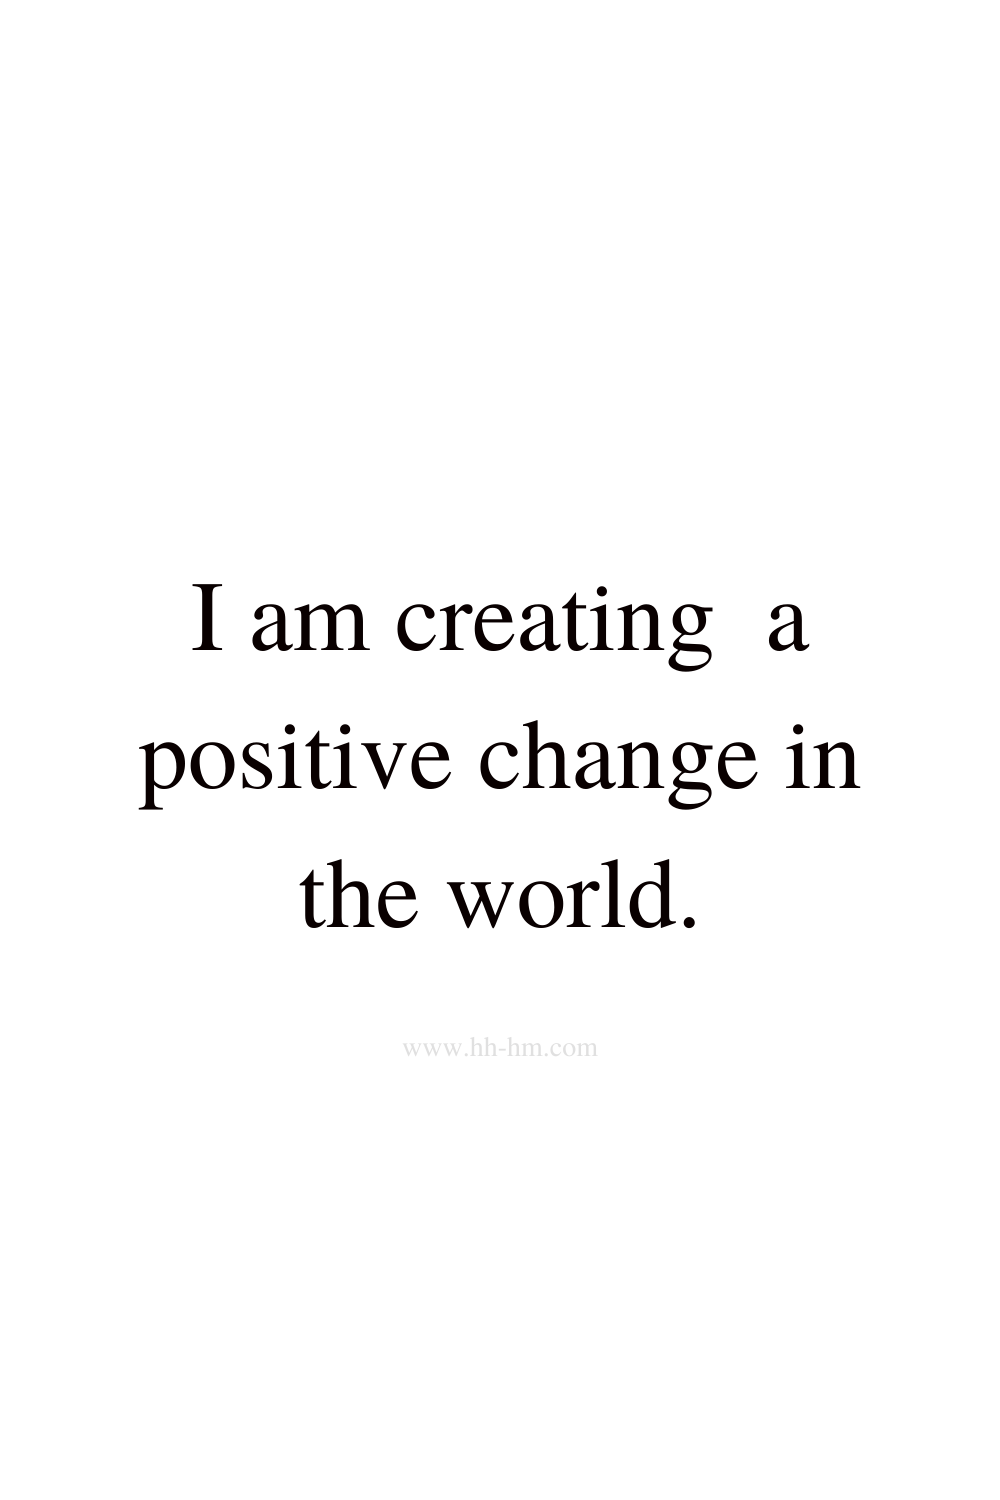 I am creating a positive change in the world - morning affirmations for success